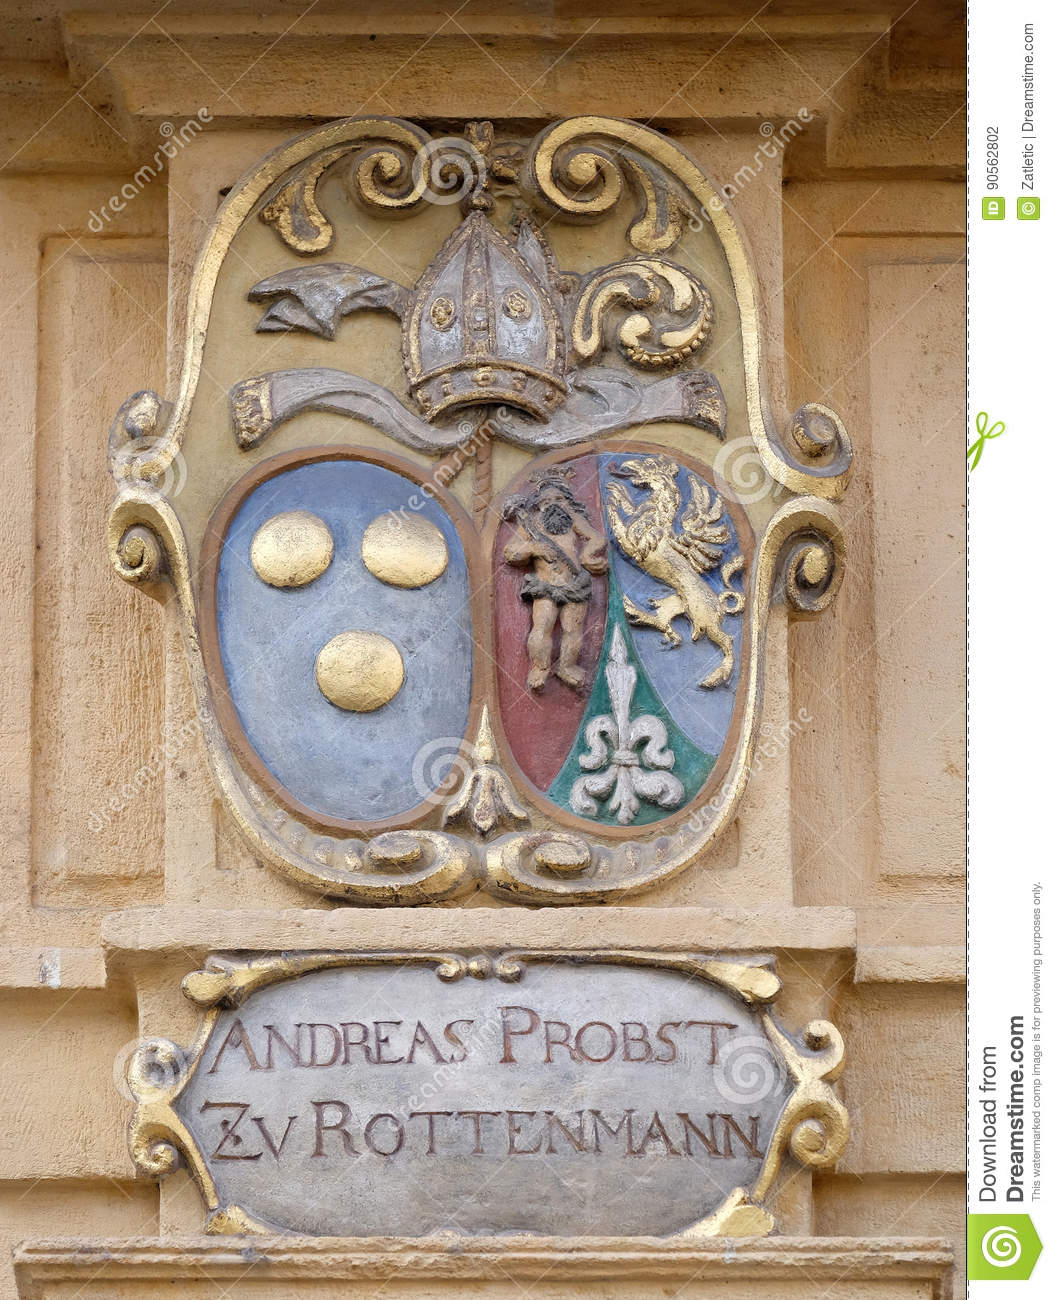 Facade coat of arms on the Landhaus historic center listed as World Heritage by UNESCO in Graz